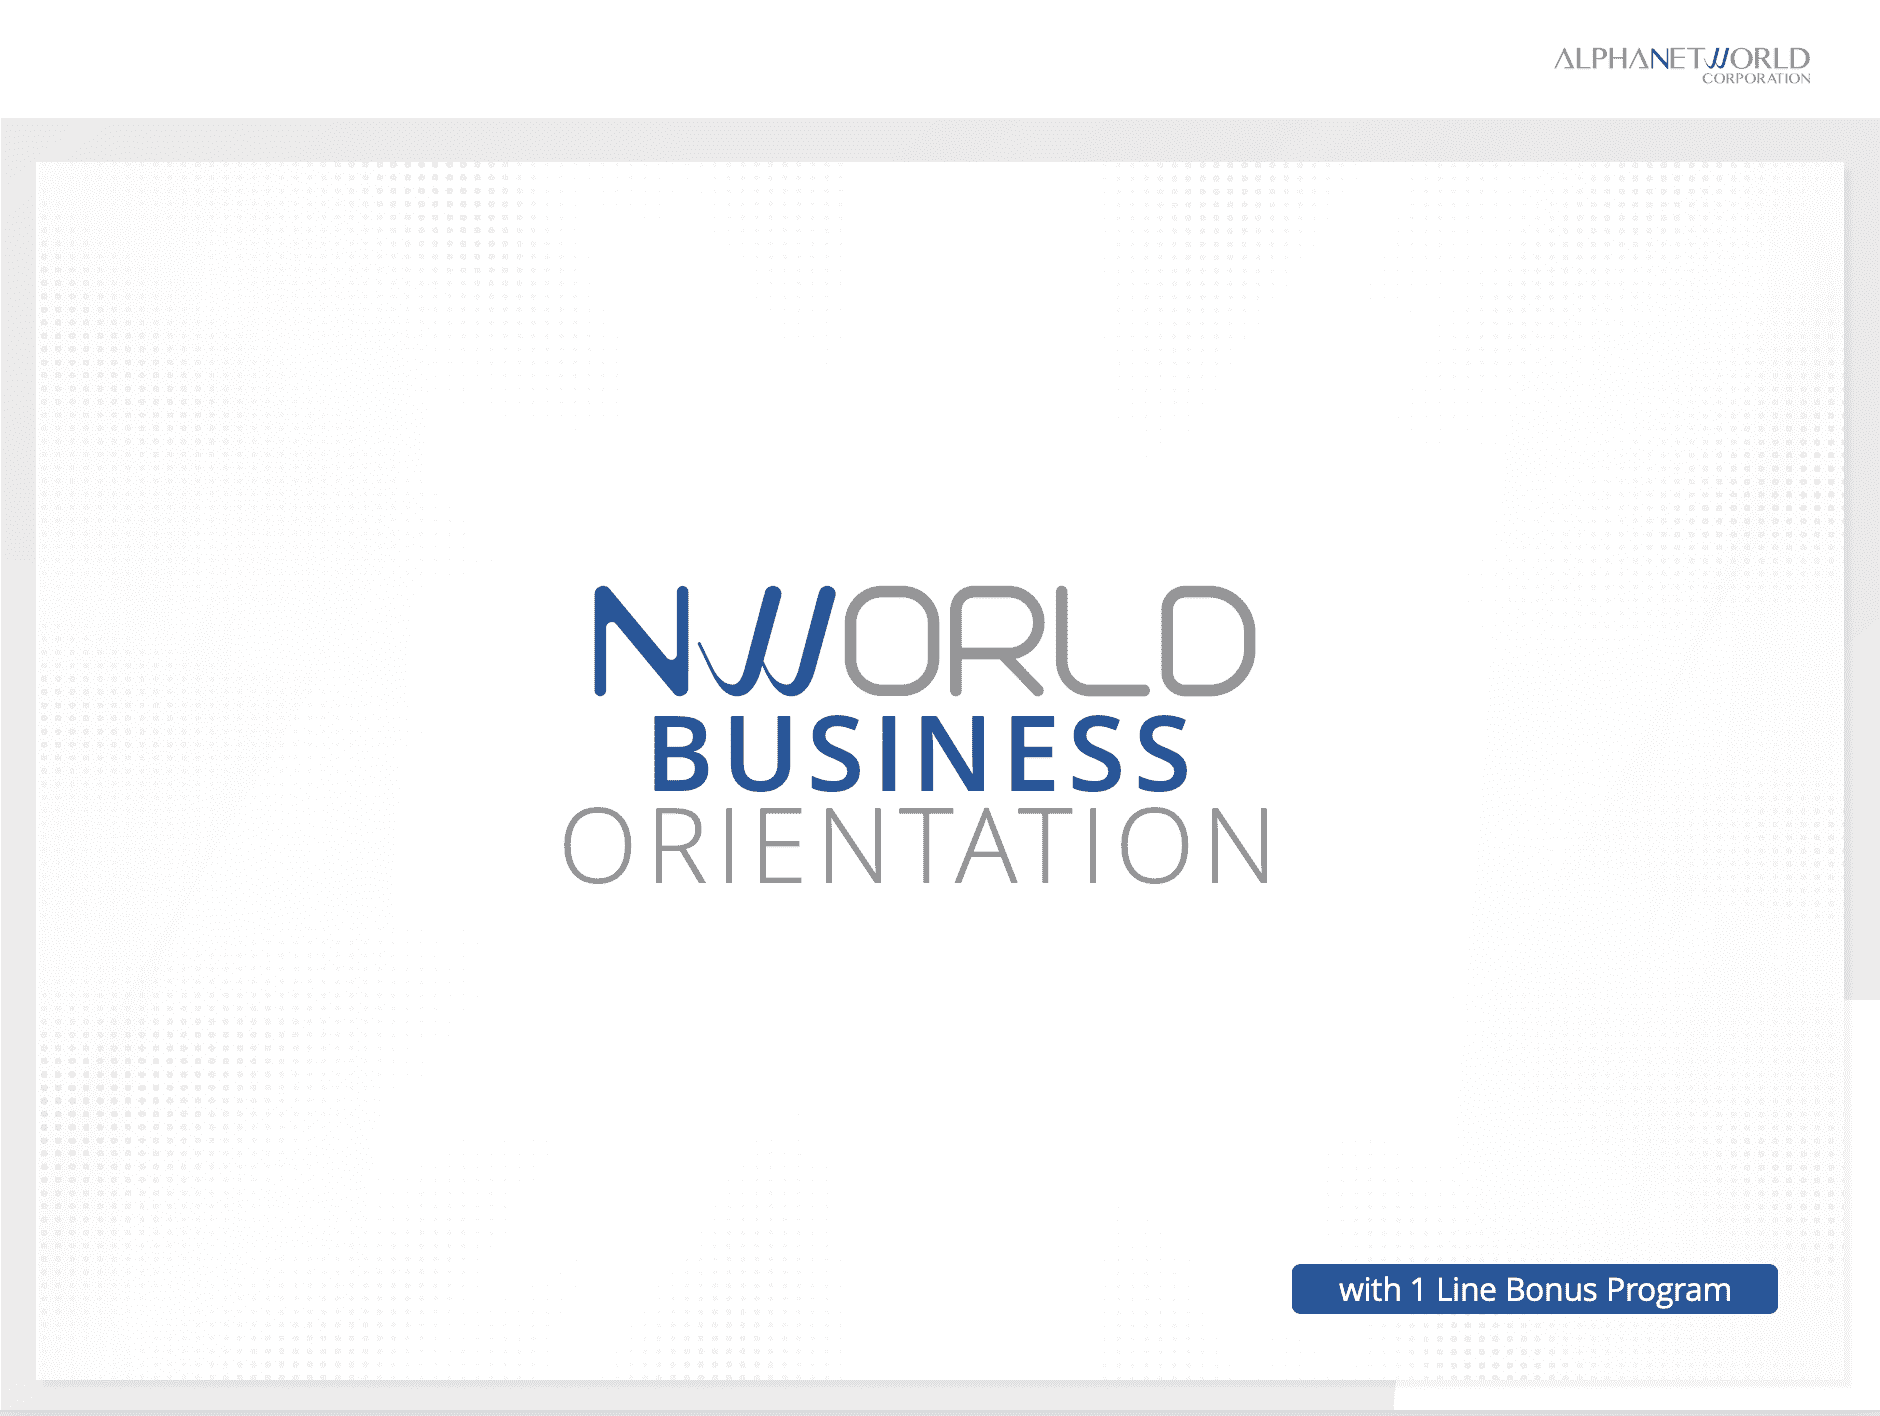 NWORLD BUSINESS ORIENTATION